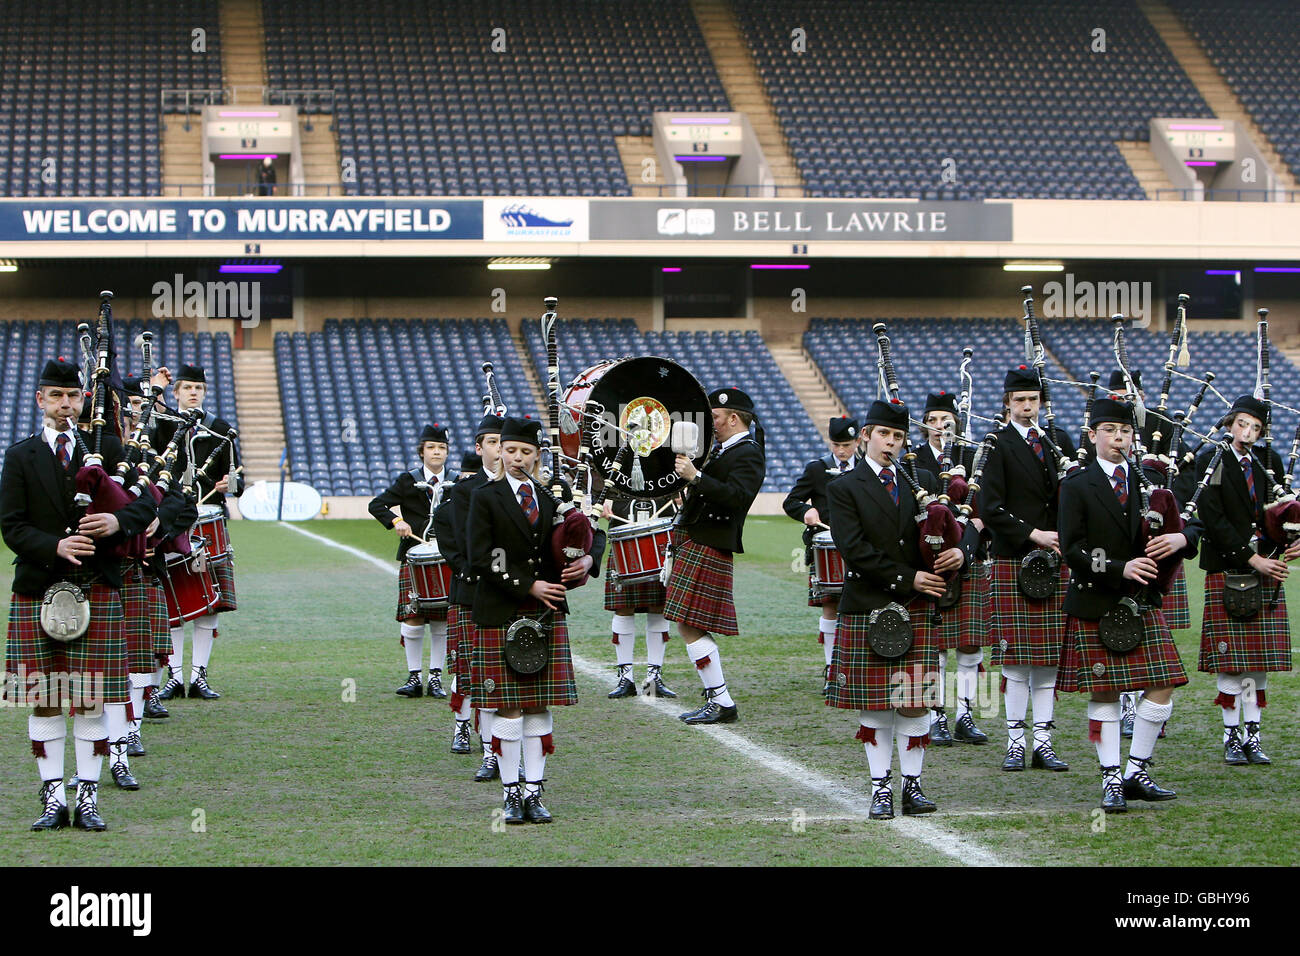 Rugby Union - Bell Lawrie Scottish Schools Cup finals Day - Under 15's - Edinburgh Academicals v George Watson's Stock Photo